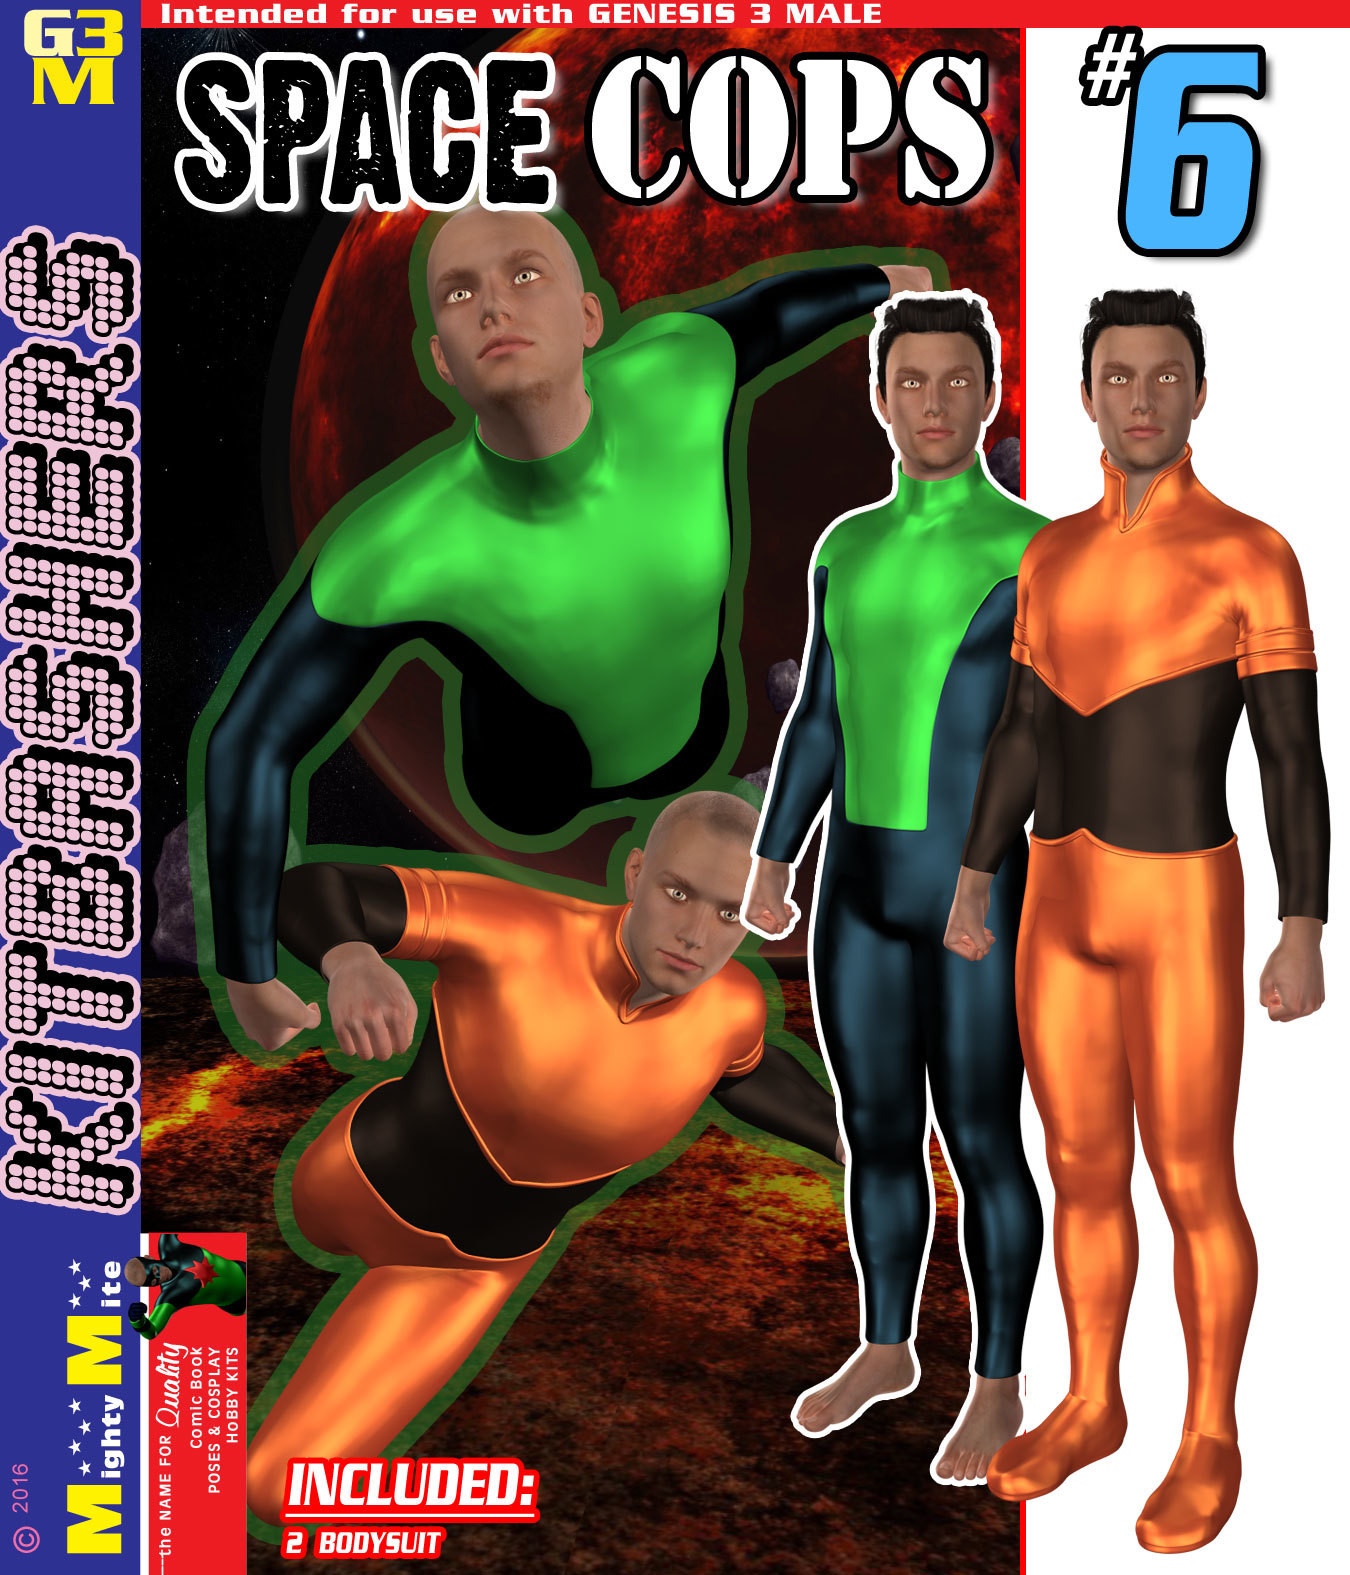 Space Cops 006 MMKBG3M